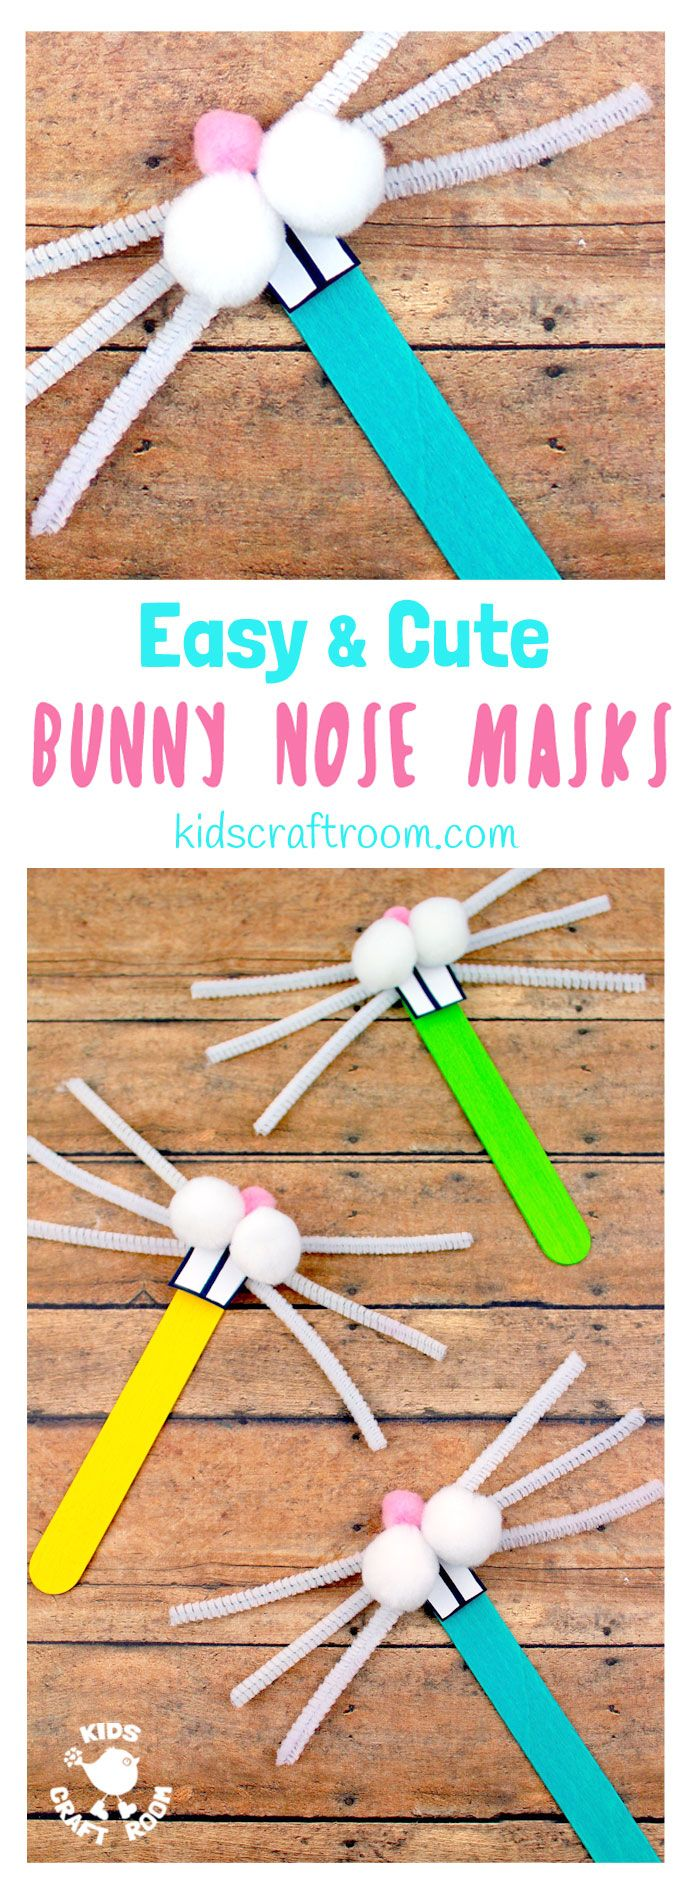 Totally cute and easy Bunny Nose Masks - so fun for Easter imaginative play. You and the kids can make these rabbit masks in minutes and they're super fun for popping into Easter baskets and sharing with friends. #Easter #EasterCrafts #Rabbit #bunny #EasterBunny #rabbitmasks #eastermasks #bunnymasks #masks #popsiclestickcrafts #springcrafts #kidscrafts #craftsforkids #kidscraftroom via @KidsCraftRoom